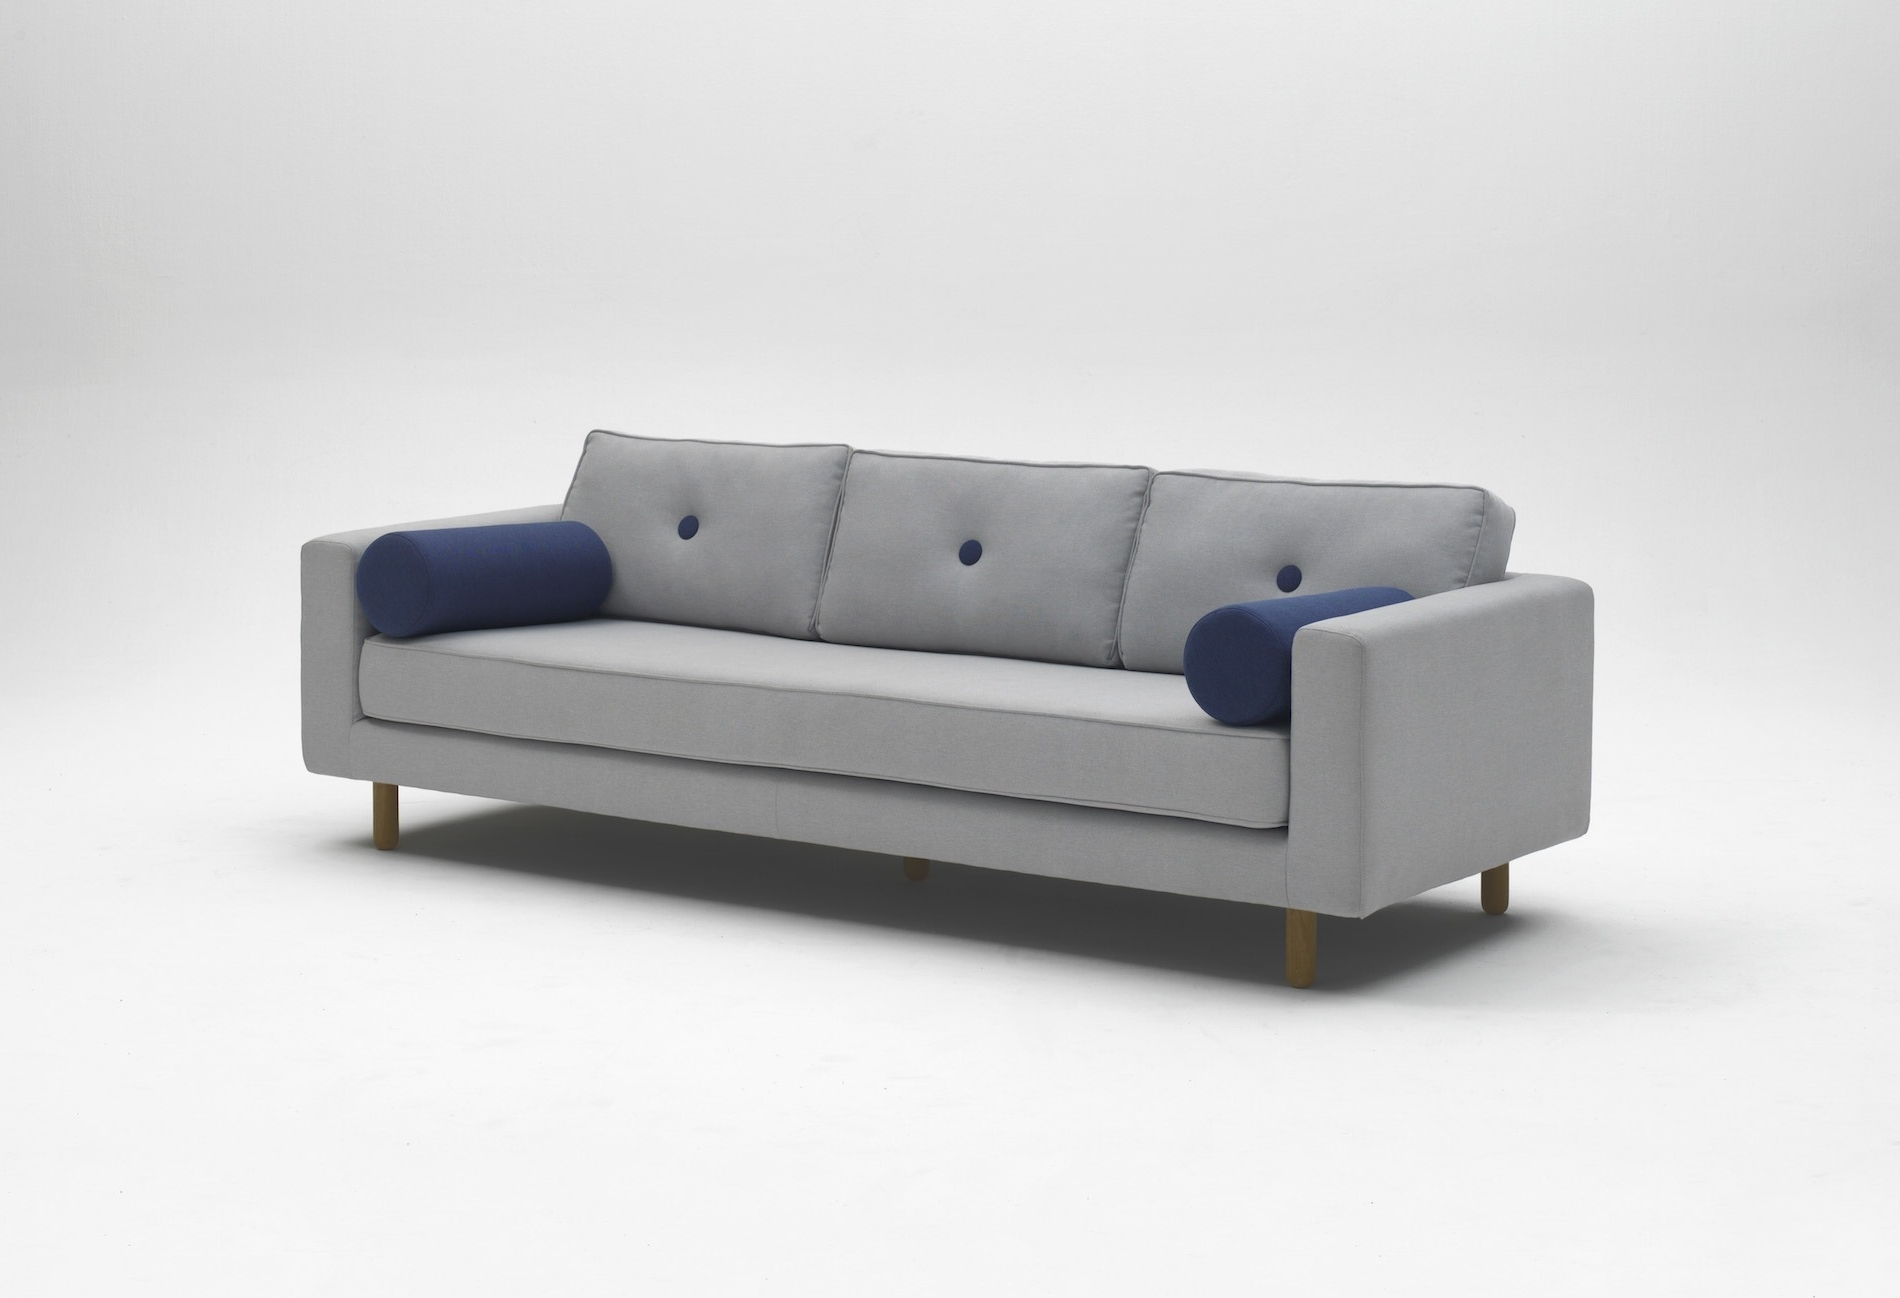 4 Seat Sofas Intended For Most Up To Date Avenue 4 Seat Fabric Sofa – Crowdyhouse (View 11 of 20)